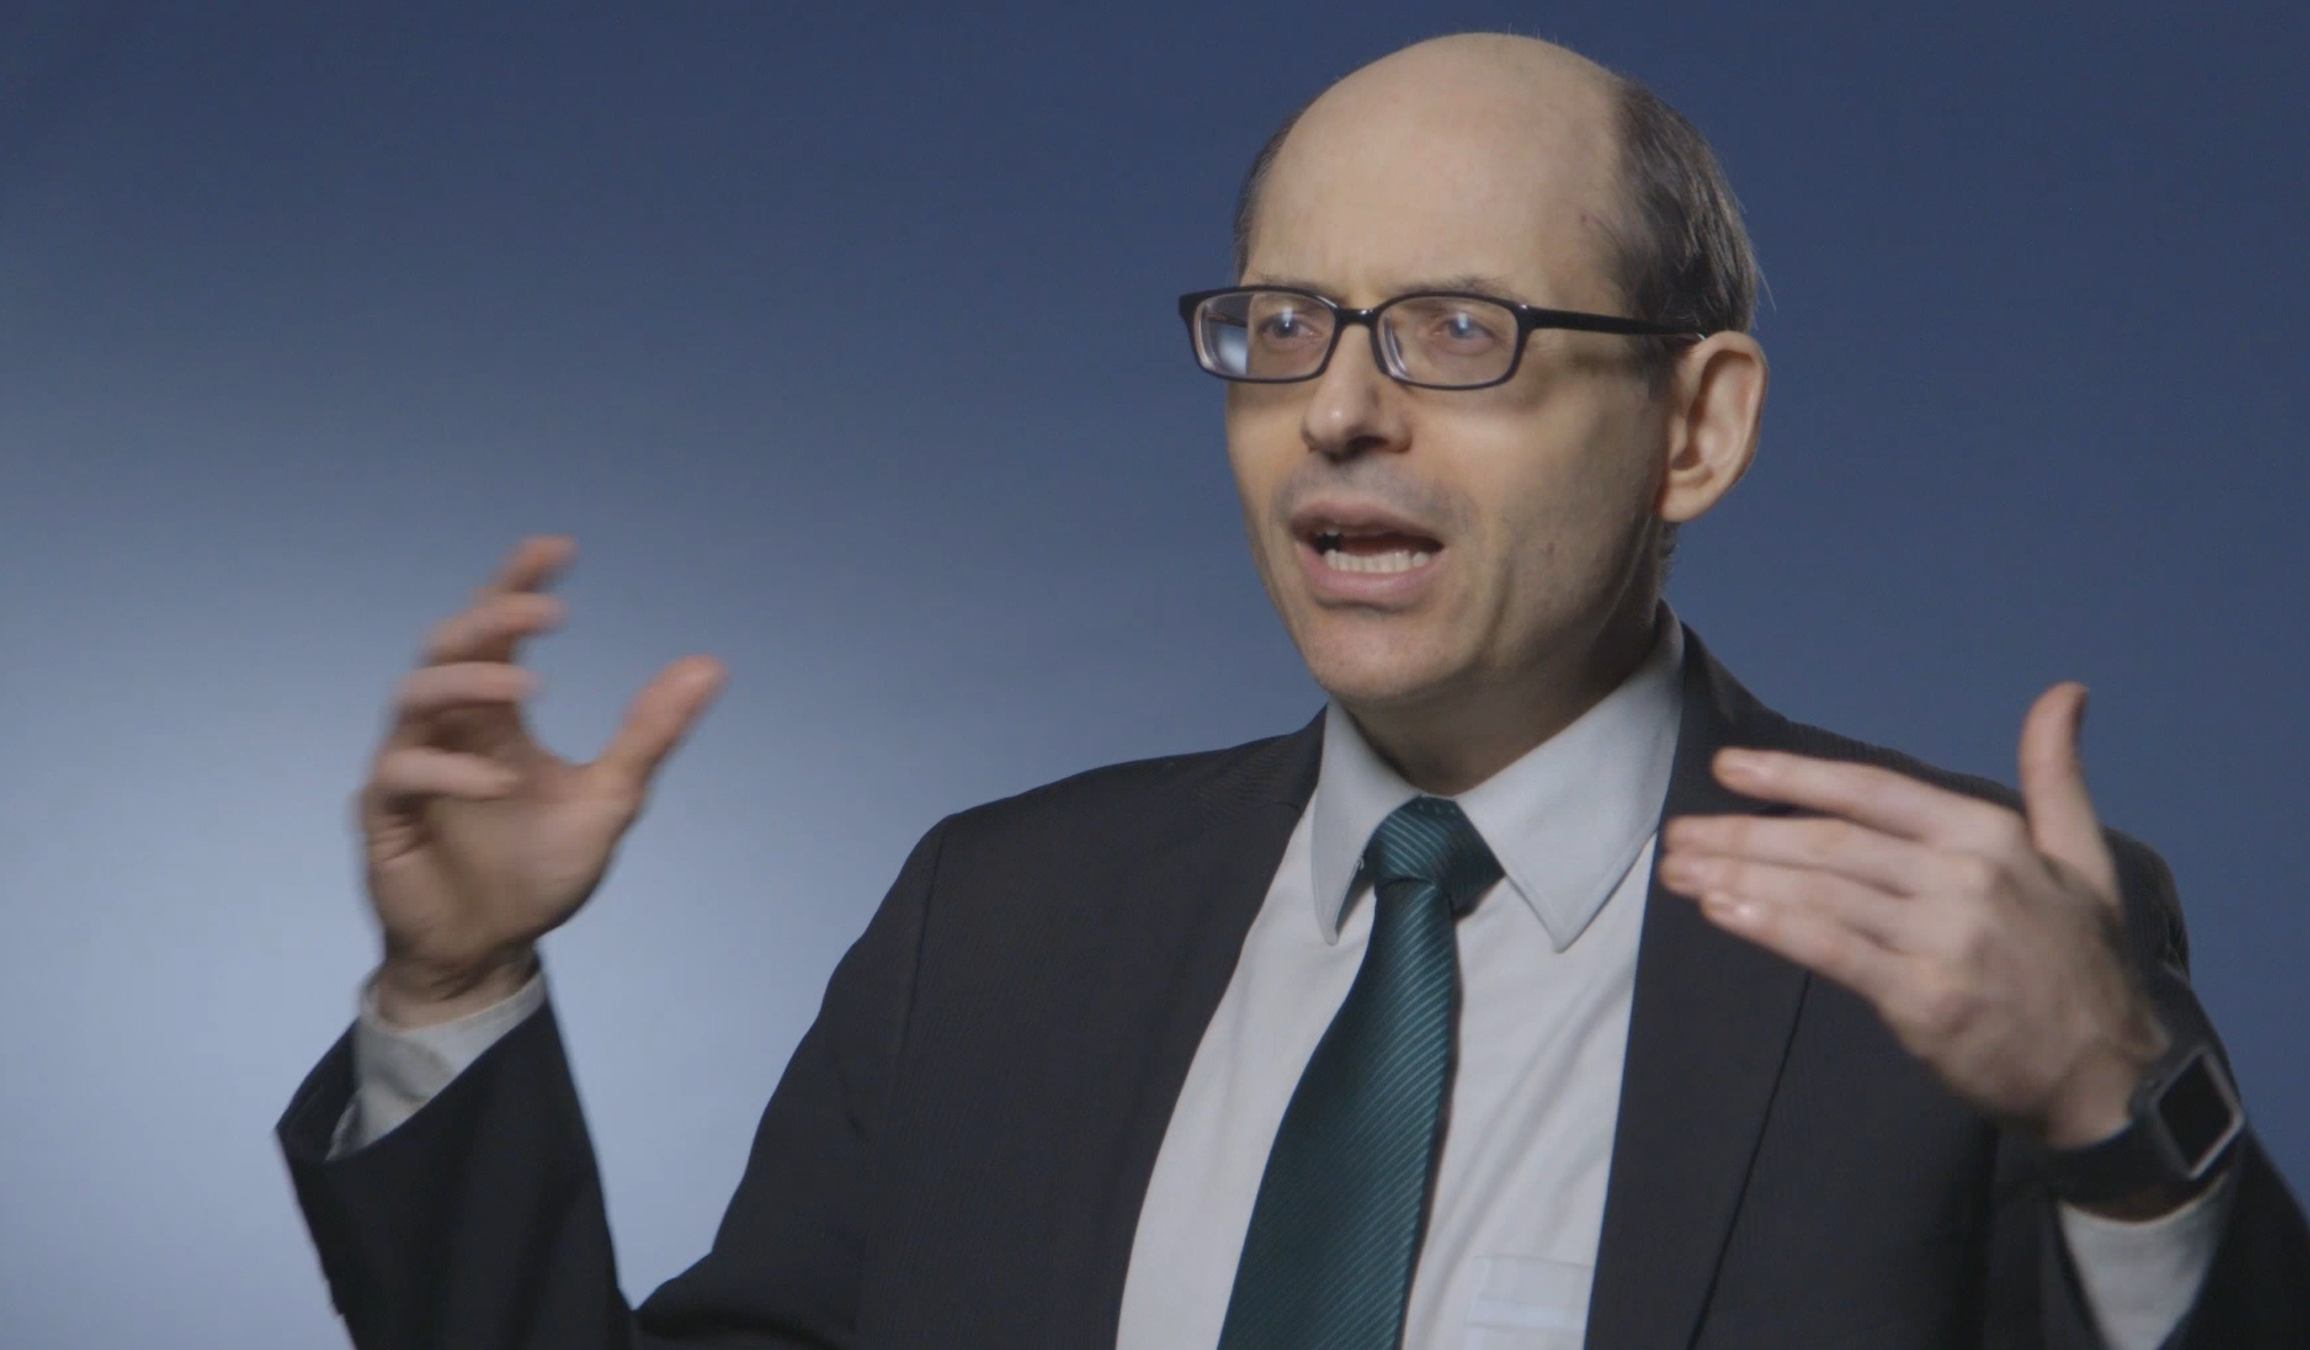 plant-based physician dr. michael greger